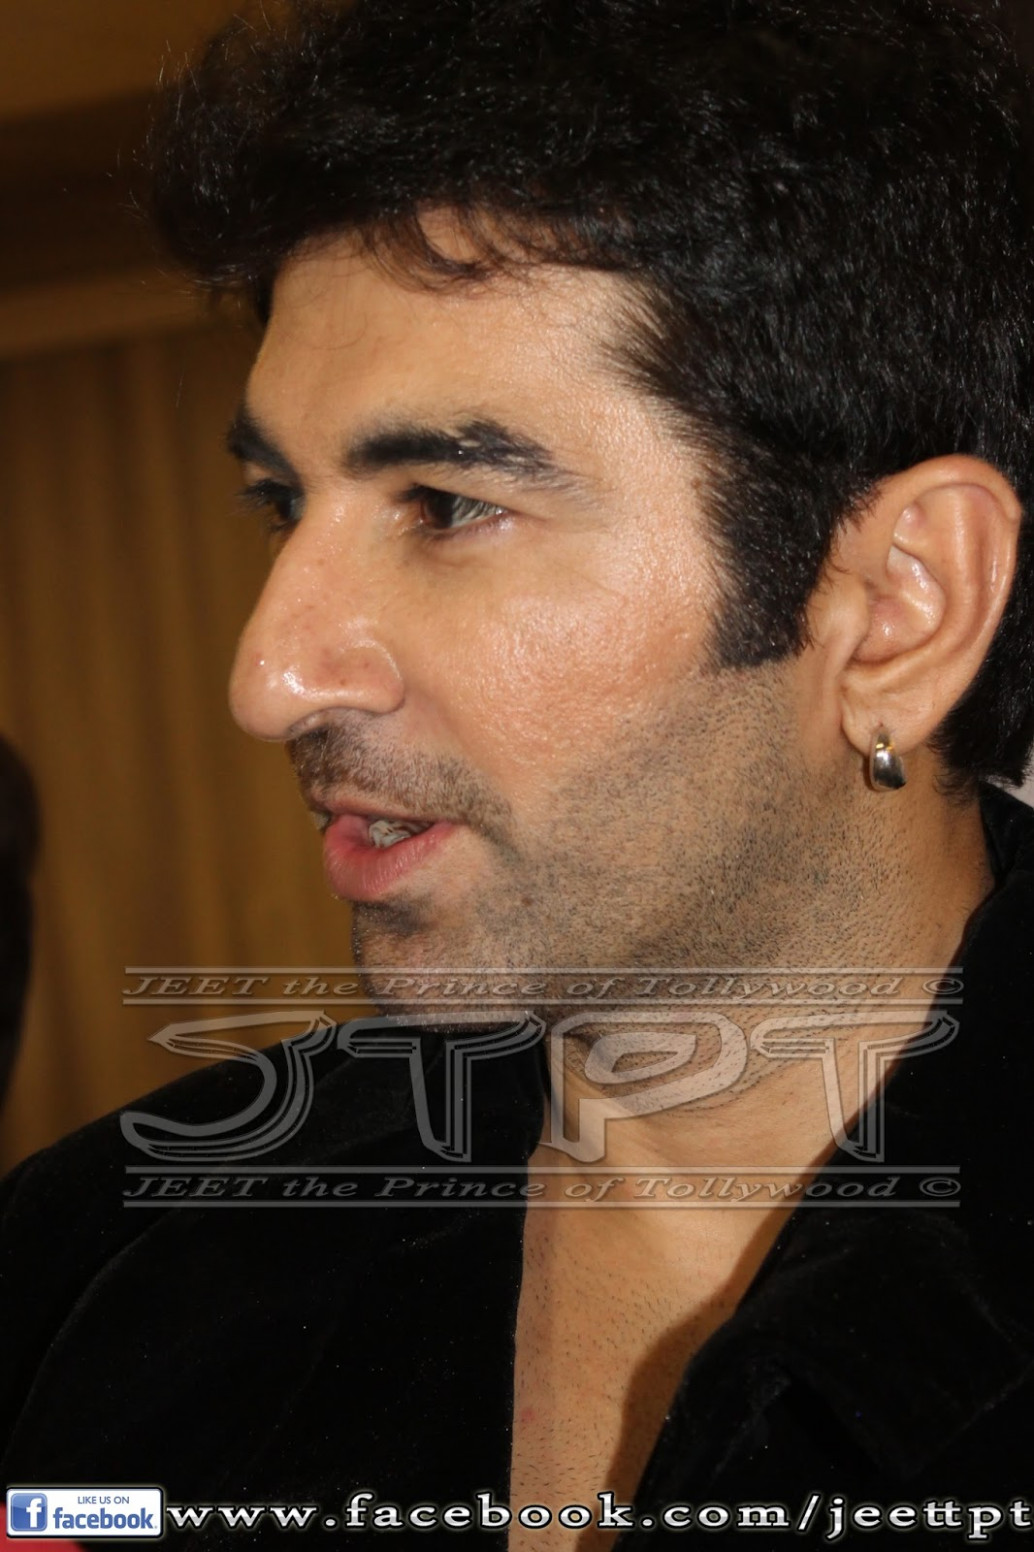 JEET the Prince of Tollywood